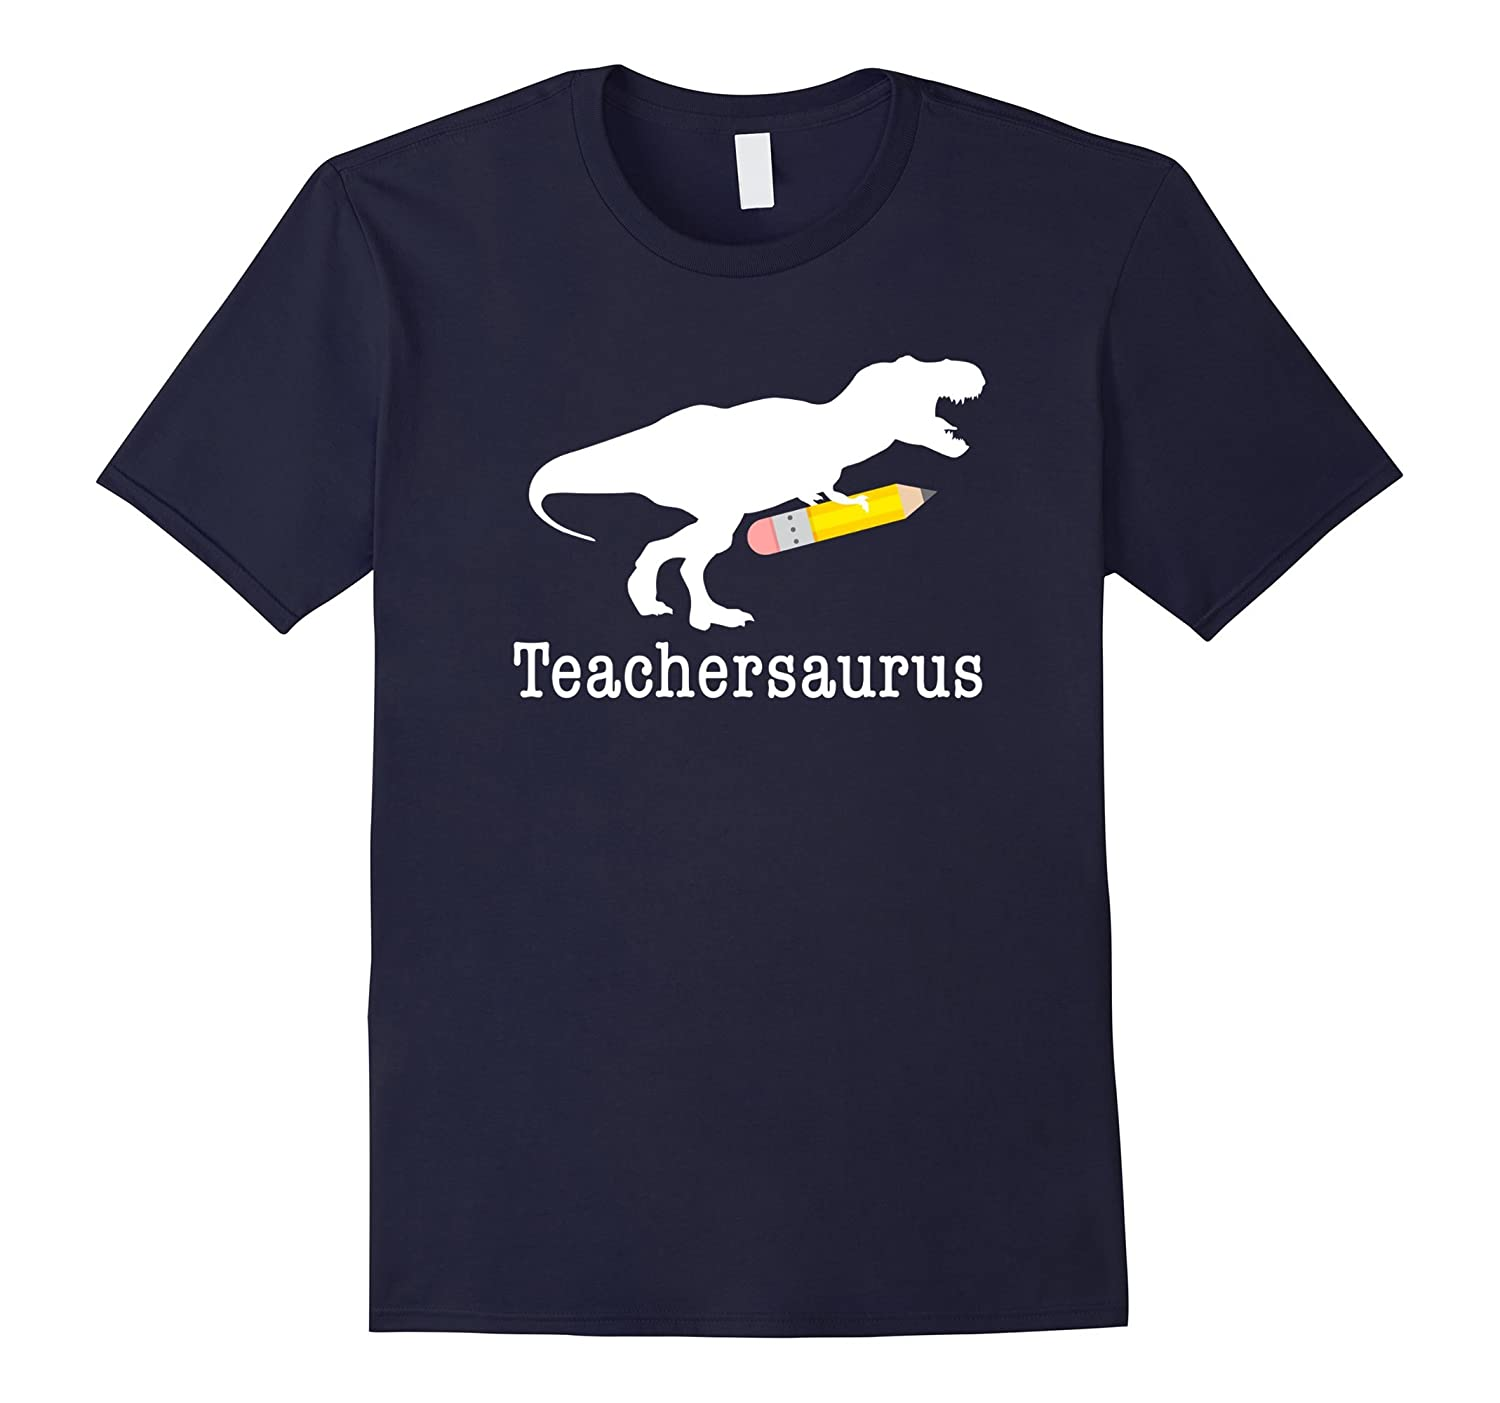 Teachersaurus Shirt, Funny Cute Dinosaur Teacher School Gift-ANZ